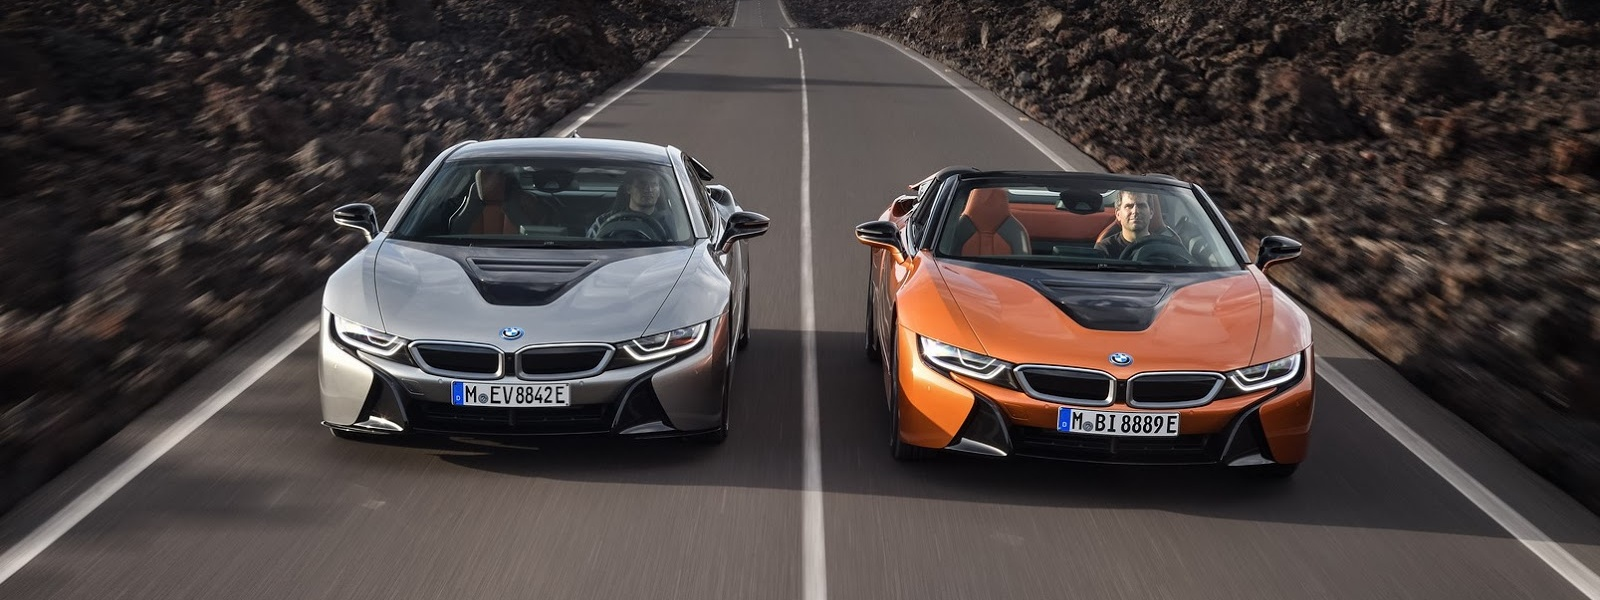 2019-BMW-i8-Roadster-Coupe-38.jpg